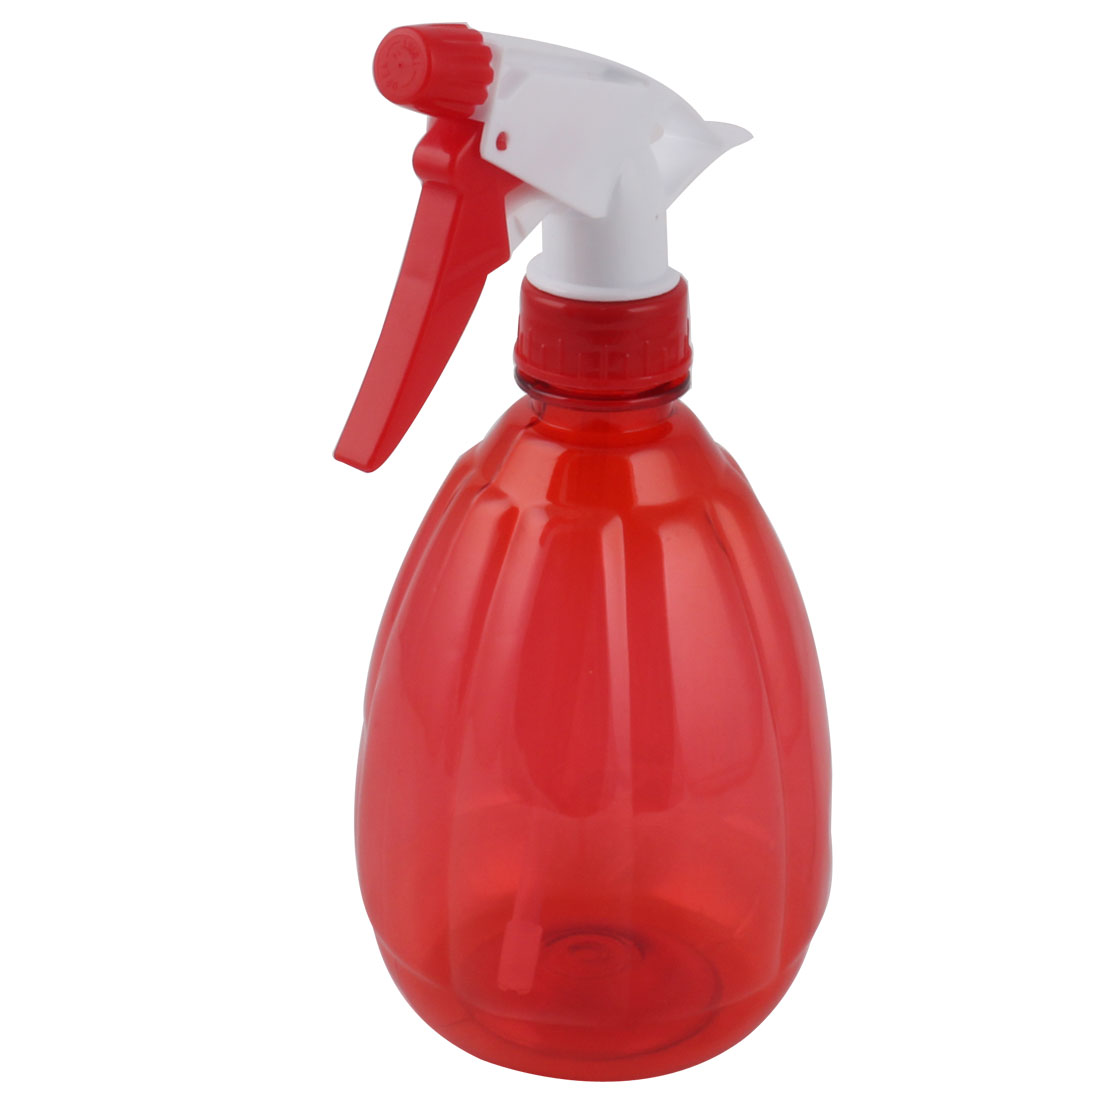 Outdoor Garden Plastic Hairdressing Potted Plant Spray Nozzle Bottle Atomizer Red